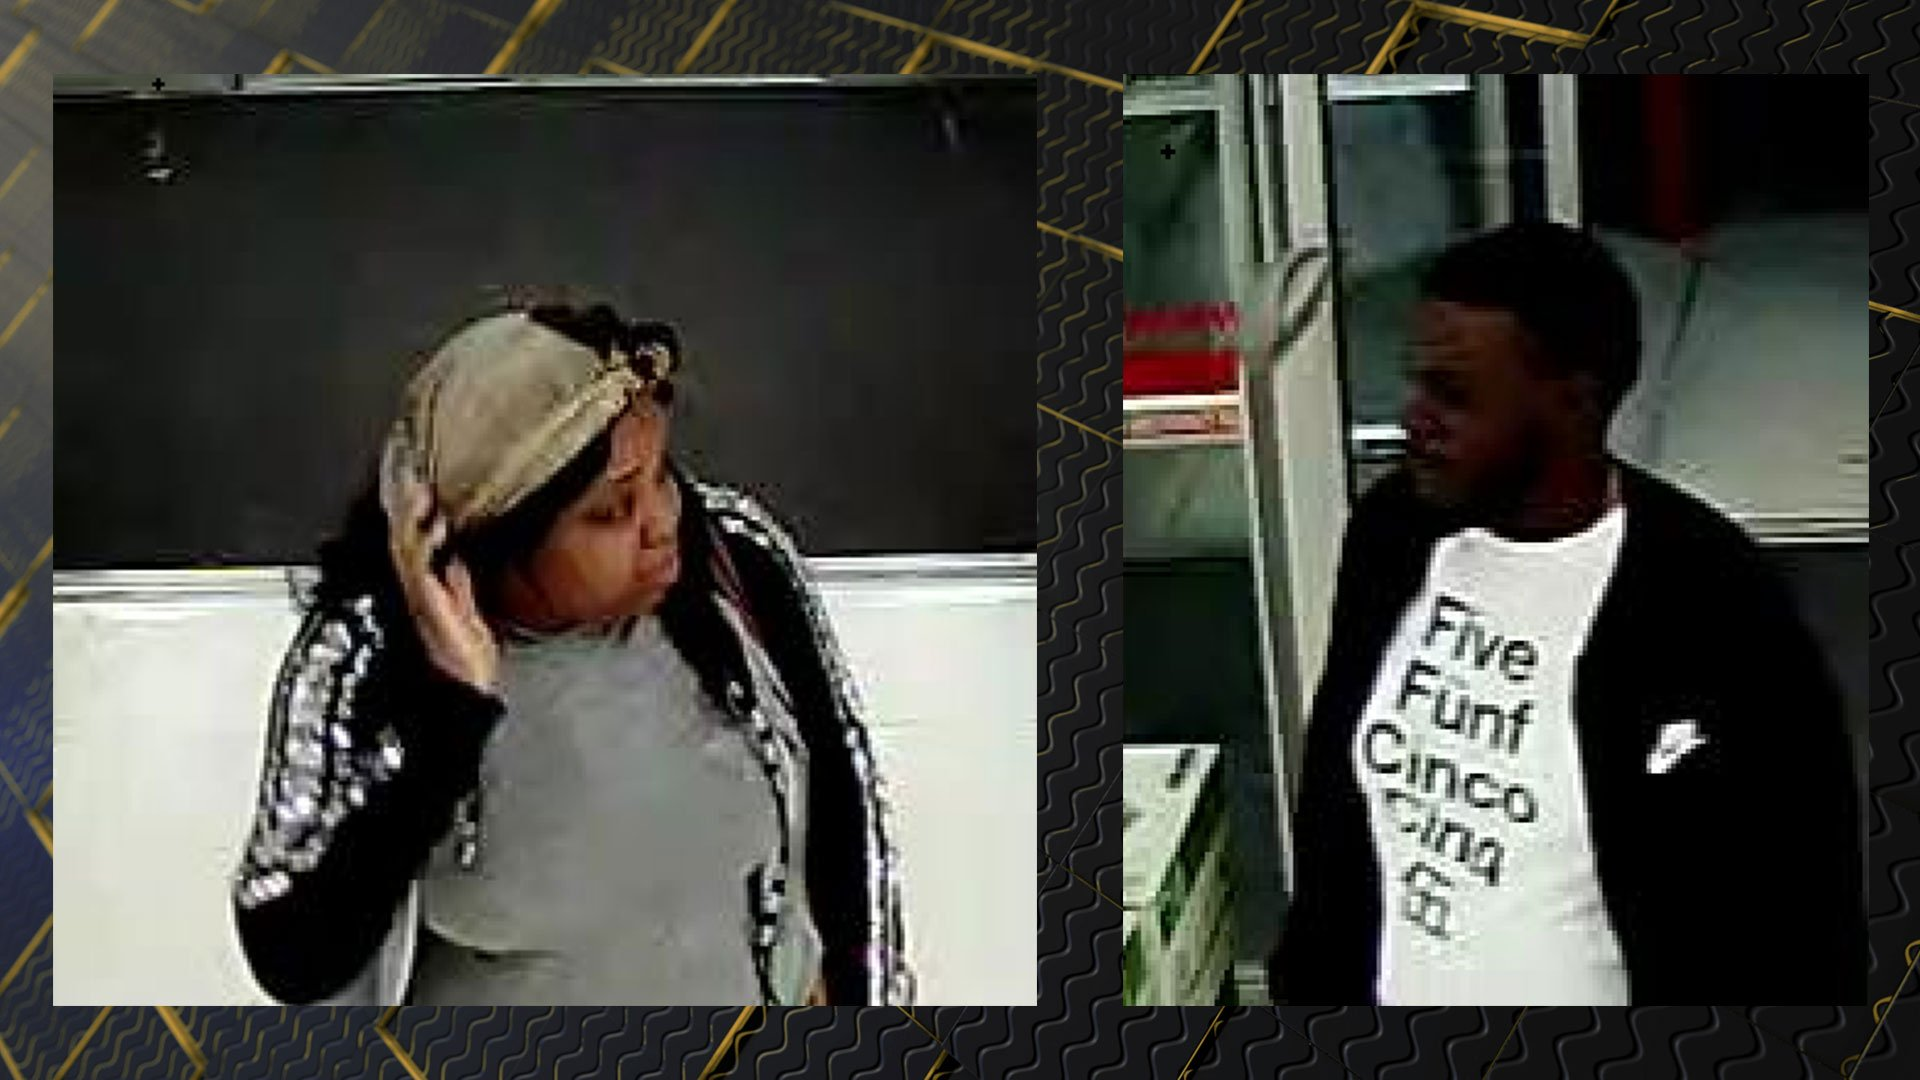 Subjects wanted for questioning in card fraud cases (source: Richmond County Sheriff's Office)